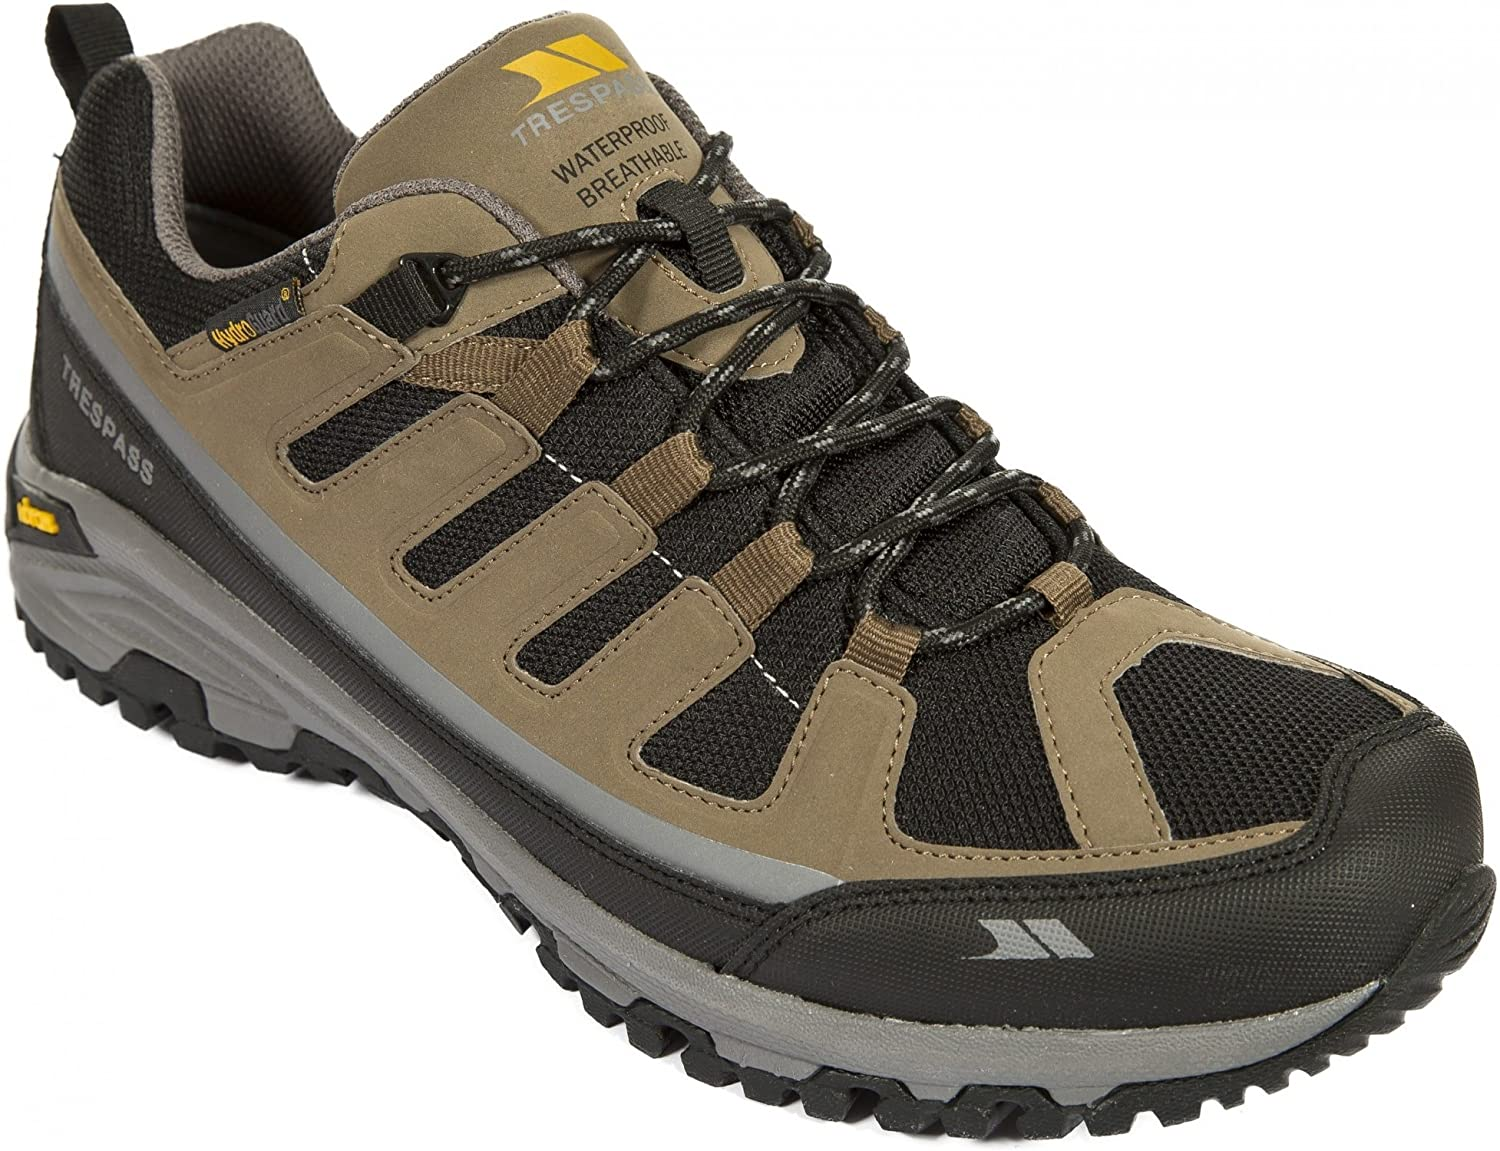 Trespass Mens Cardrona Low Cut Hiking Sneakers Trainers